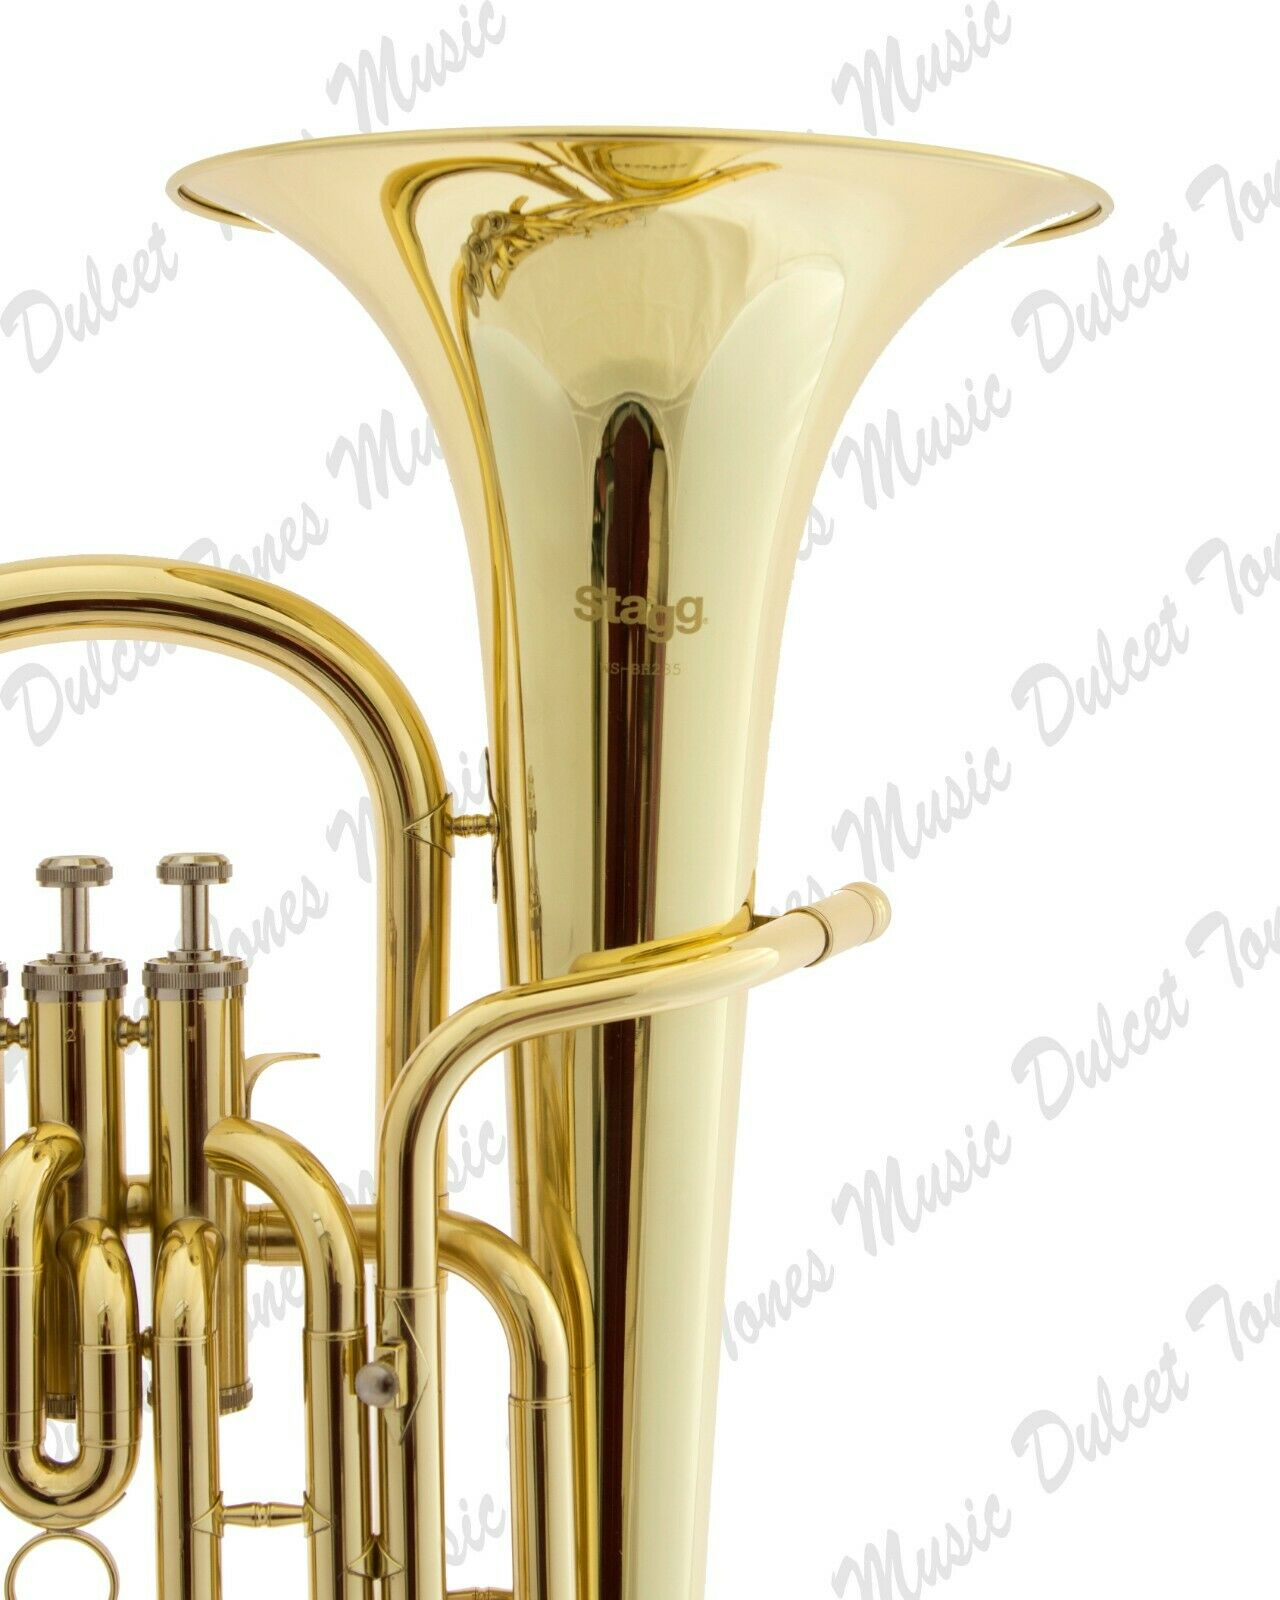 Stagg Bb Three Valve Baritone Horn Brass Body Clear Lacquer Finish Fast Postage Musical Instruments & Gear